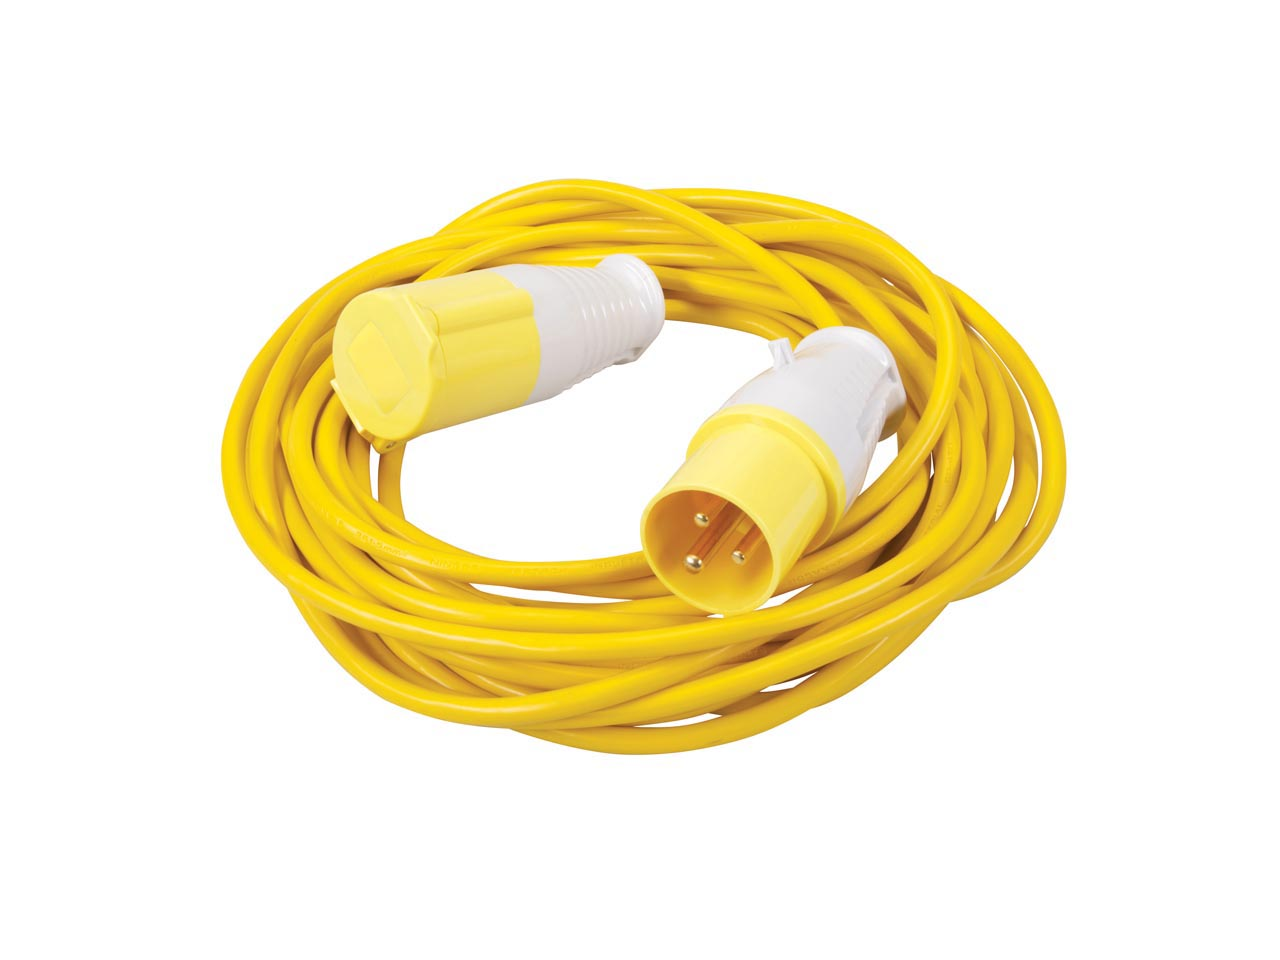 Power Master Extension Lead 16A 110V 10M 475654, 3 pin 10 metre long heavy duty extension lead.